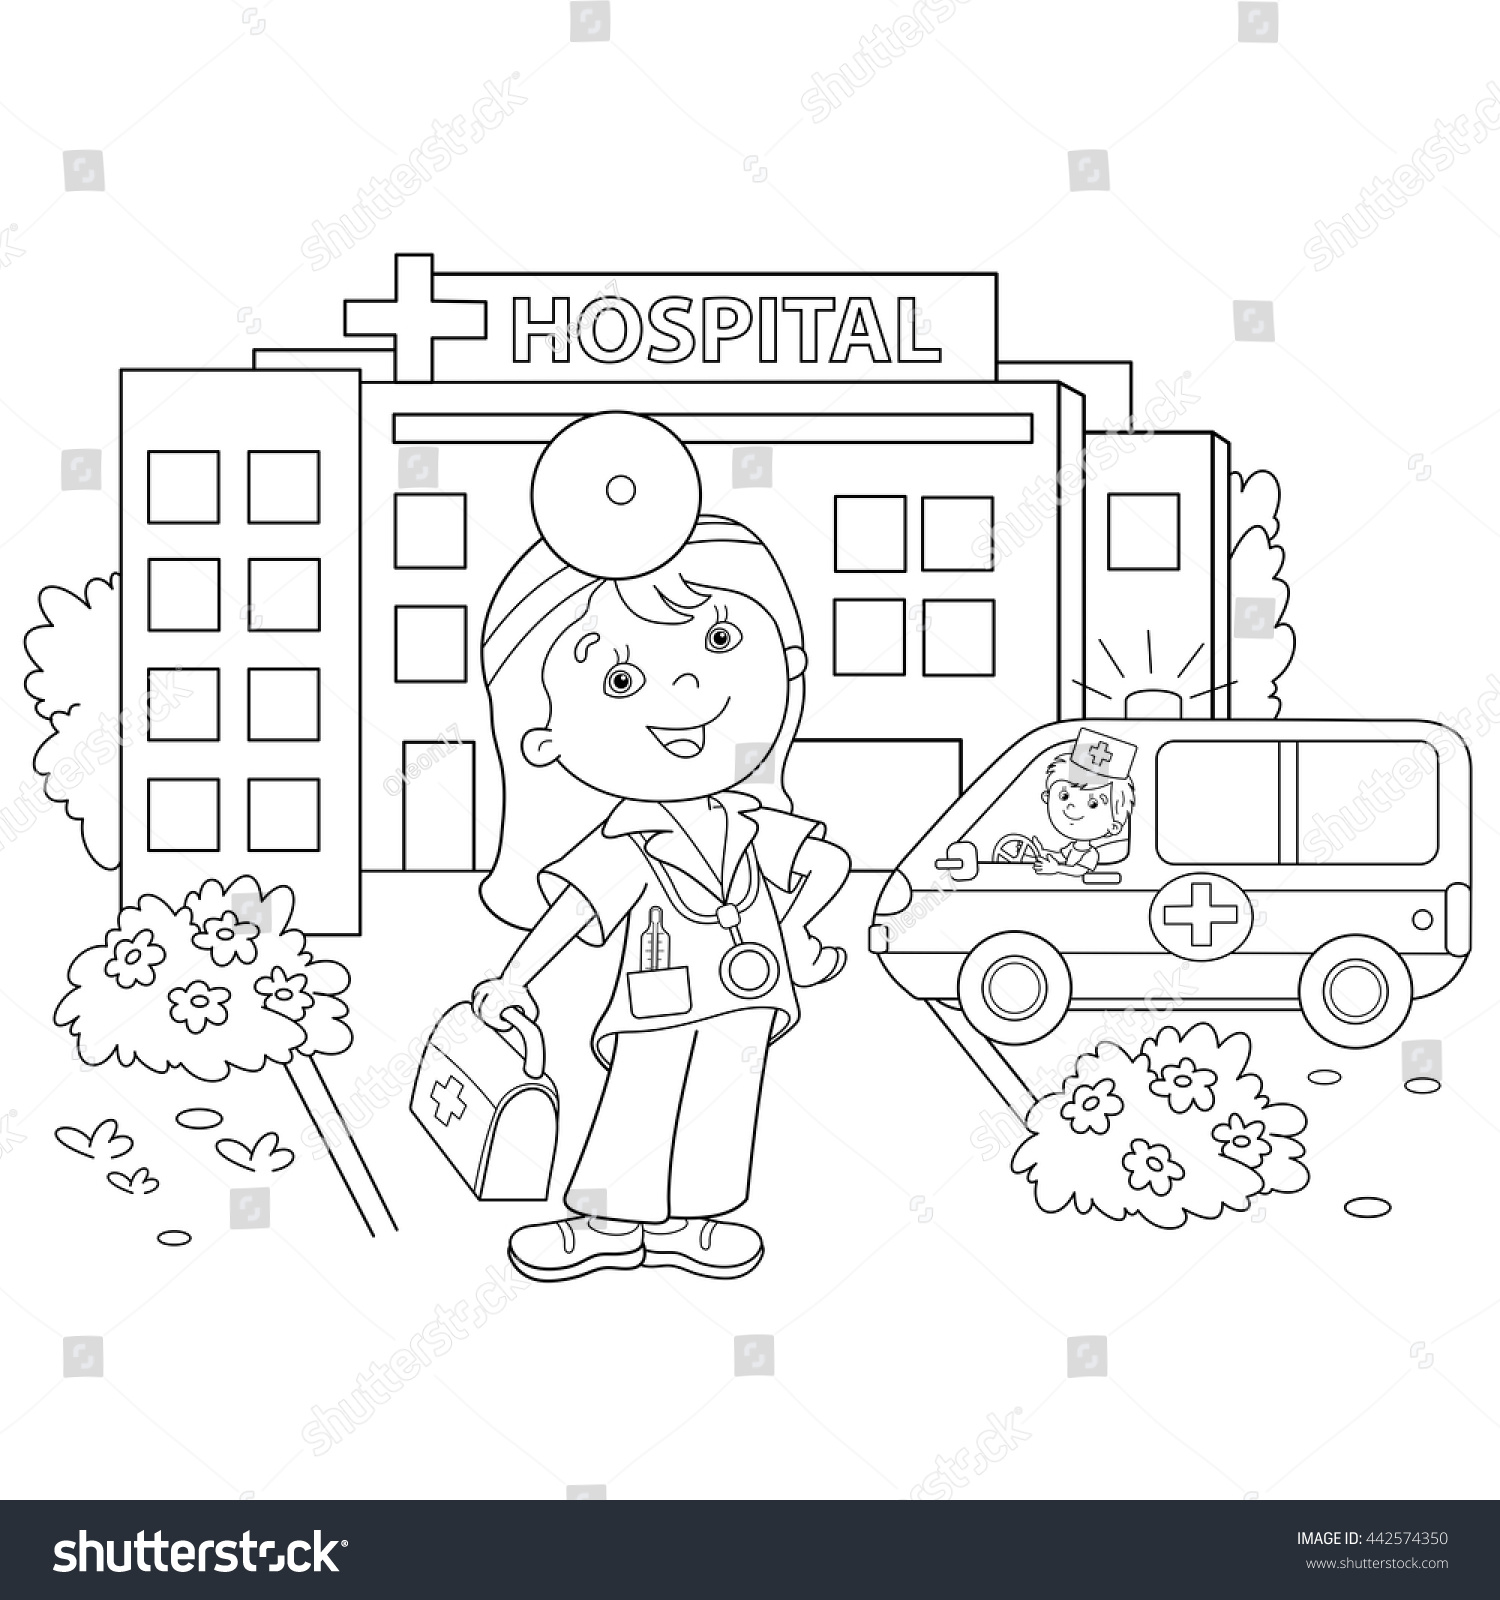 Childrens hospital coloring book - Coloring Page Outline Of Cartoon Doctor With Ambulance Car Near The Hospital Profession Medicine